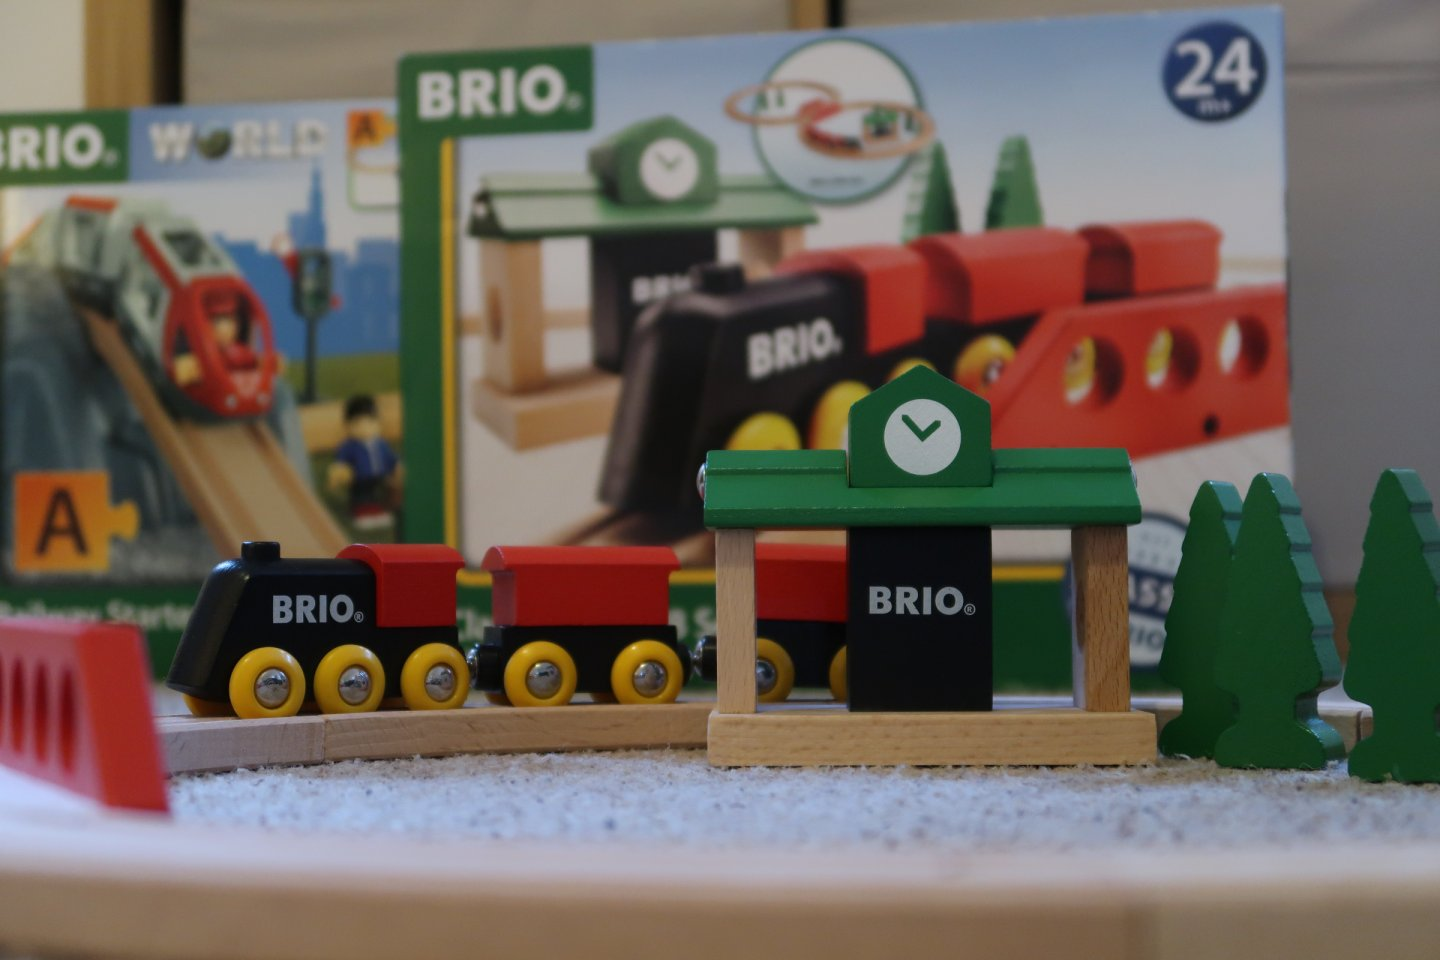 BRIO Classic Railway Figure 8 Set, Brio train set, BRIO World